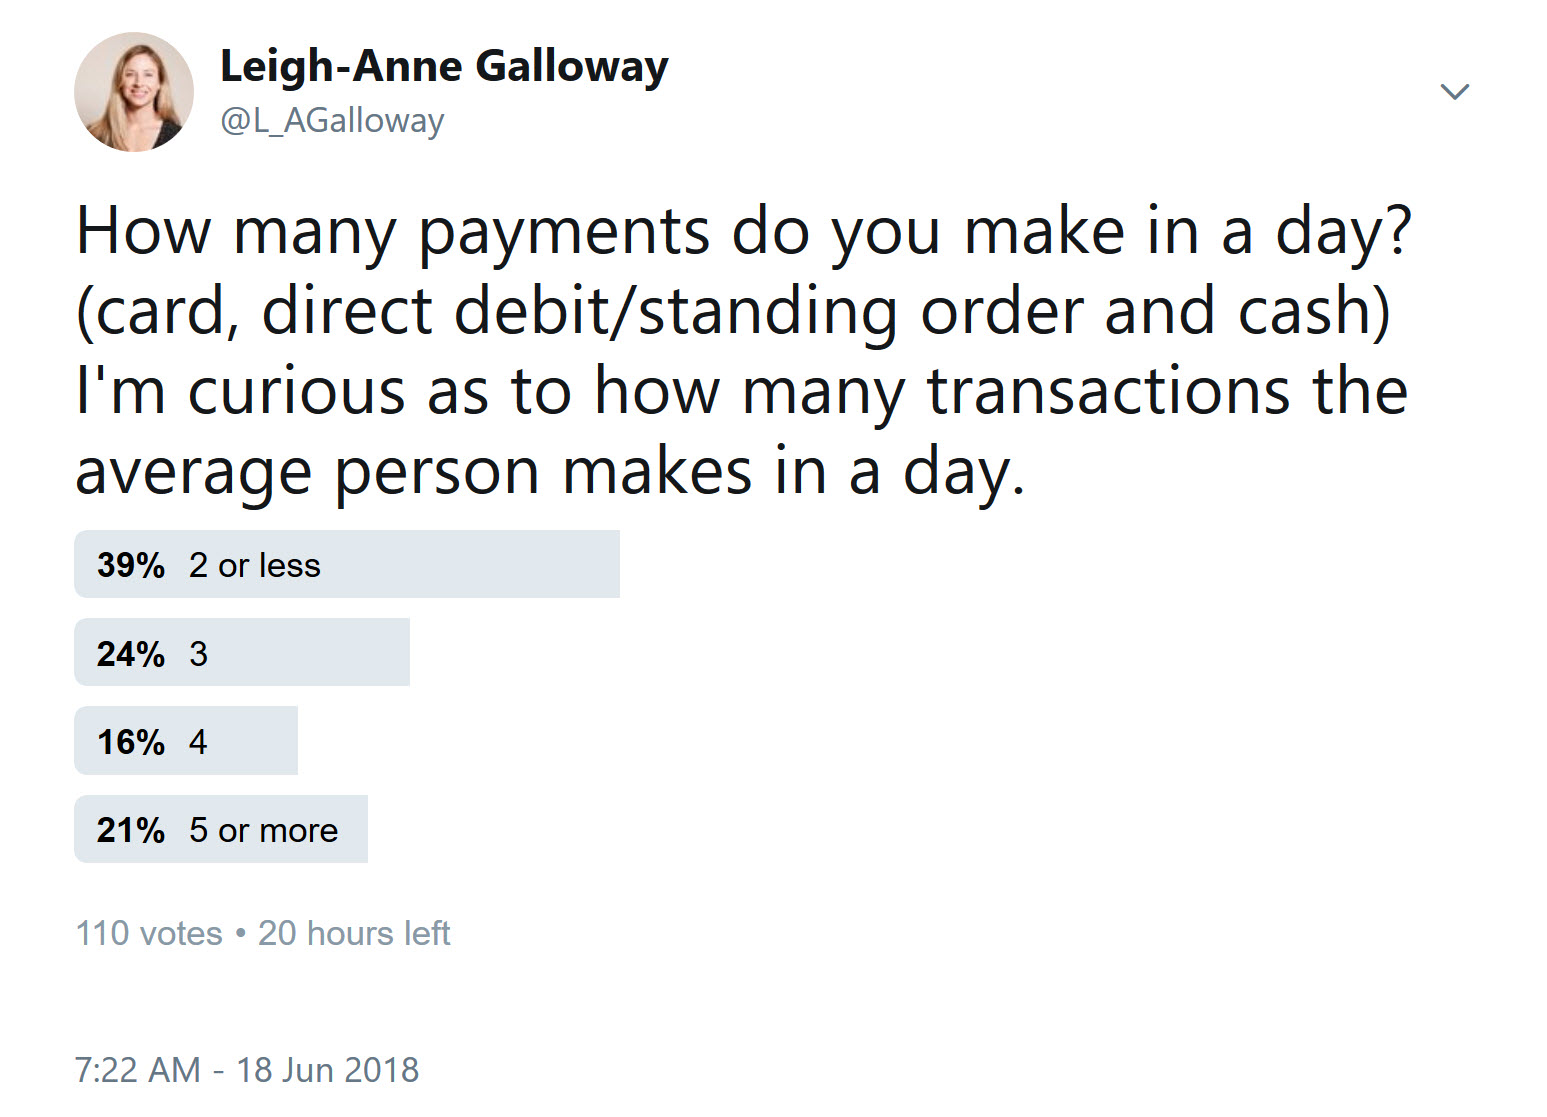 payment-vote